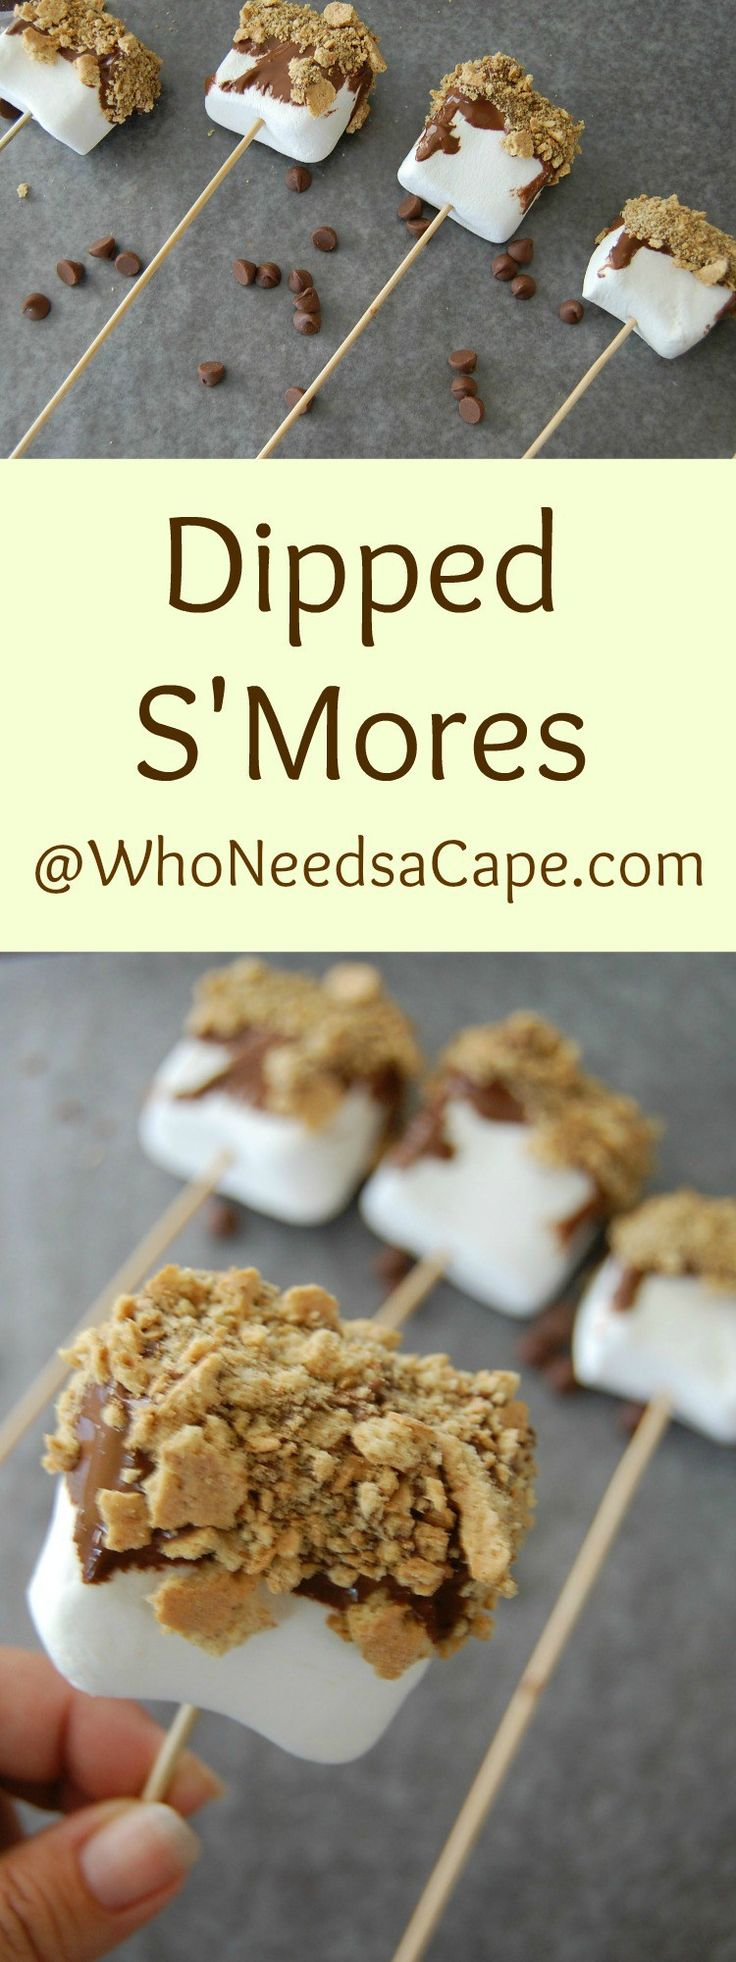 Uncategorized How To Make A Movie As A Kid 25 best movie night snacks images on pinterest desserts family dipped smores are a super fun summer treat easy to make and your kids can them too perfect for who n